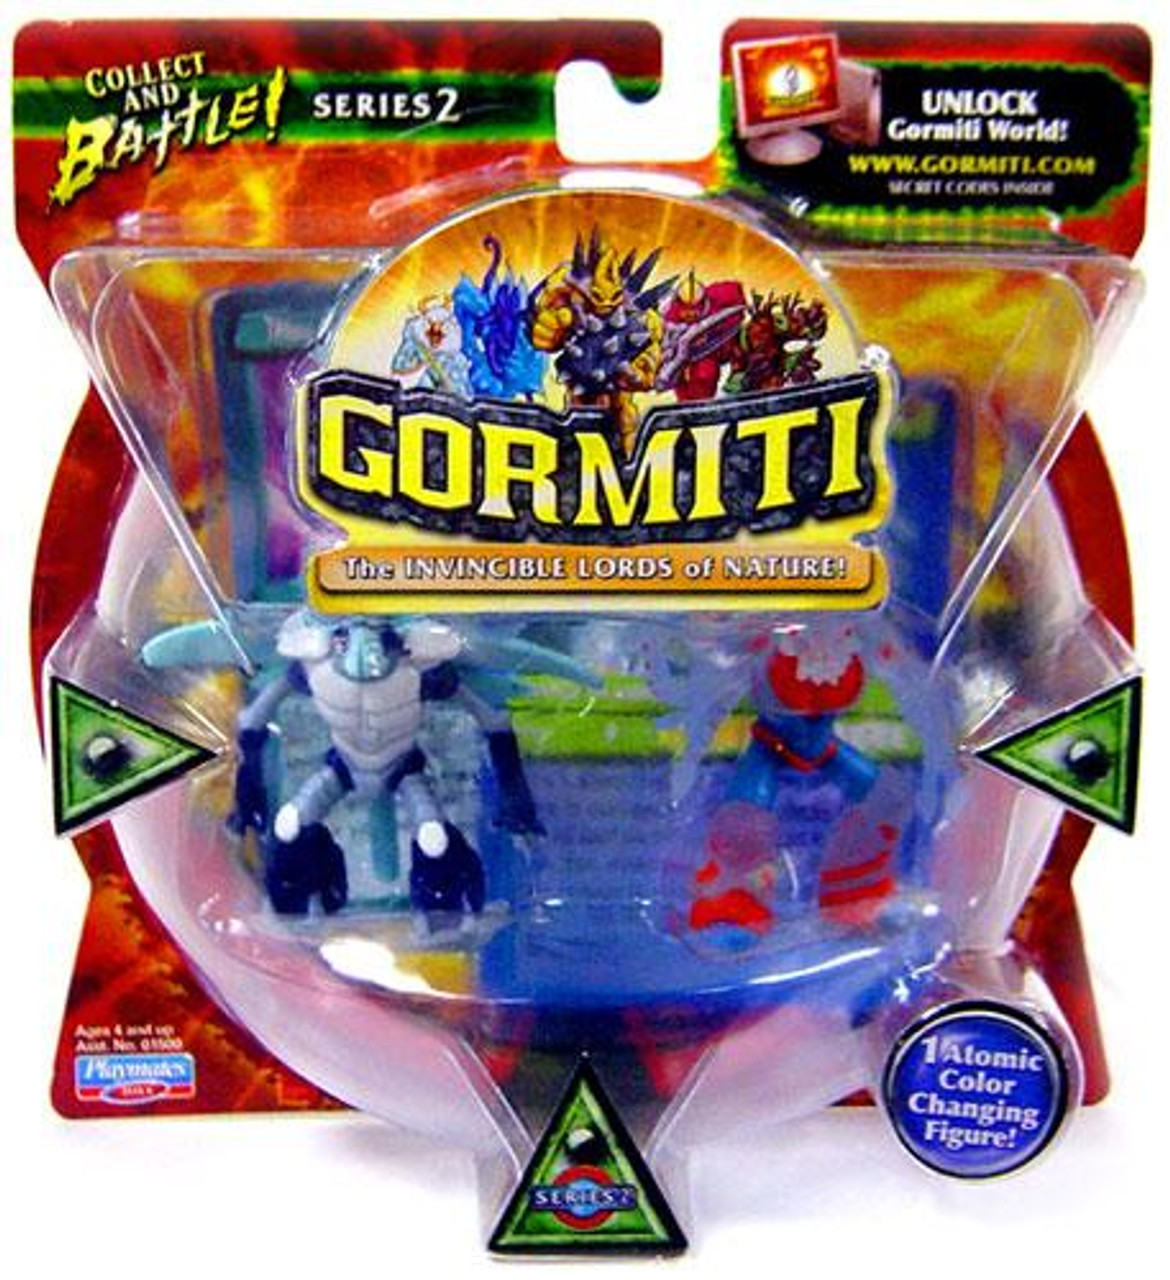 Gormiti Series 2 Dragon the Lethal & Multiplep Mini Figure 2-Pack [Random Colors]